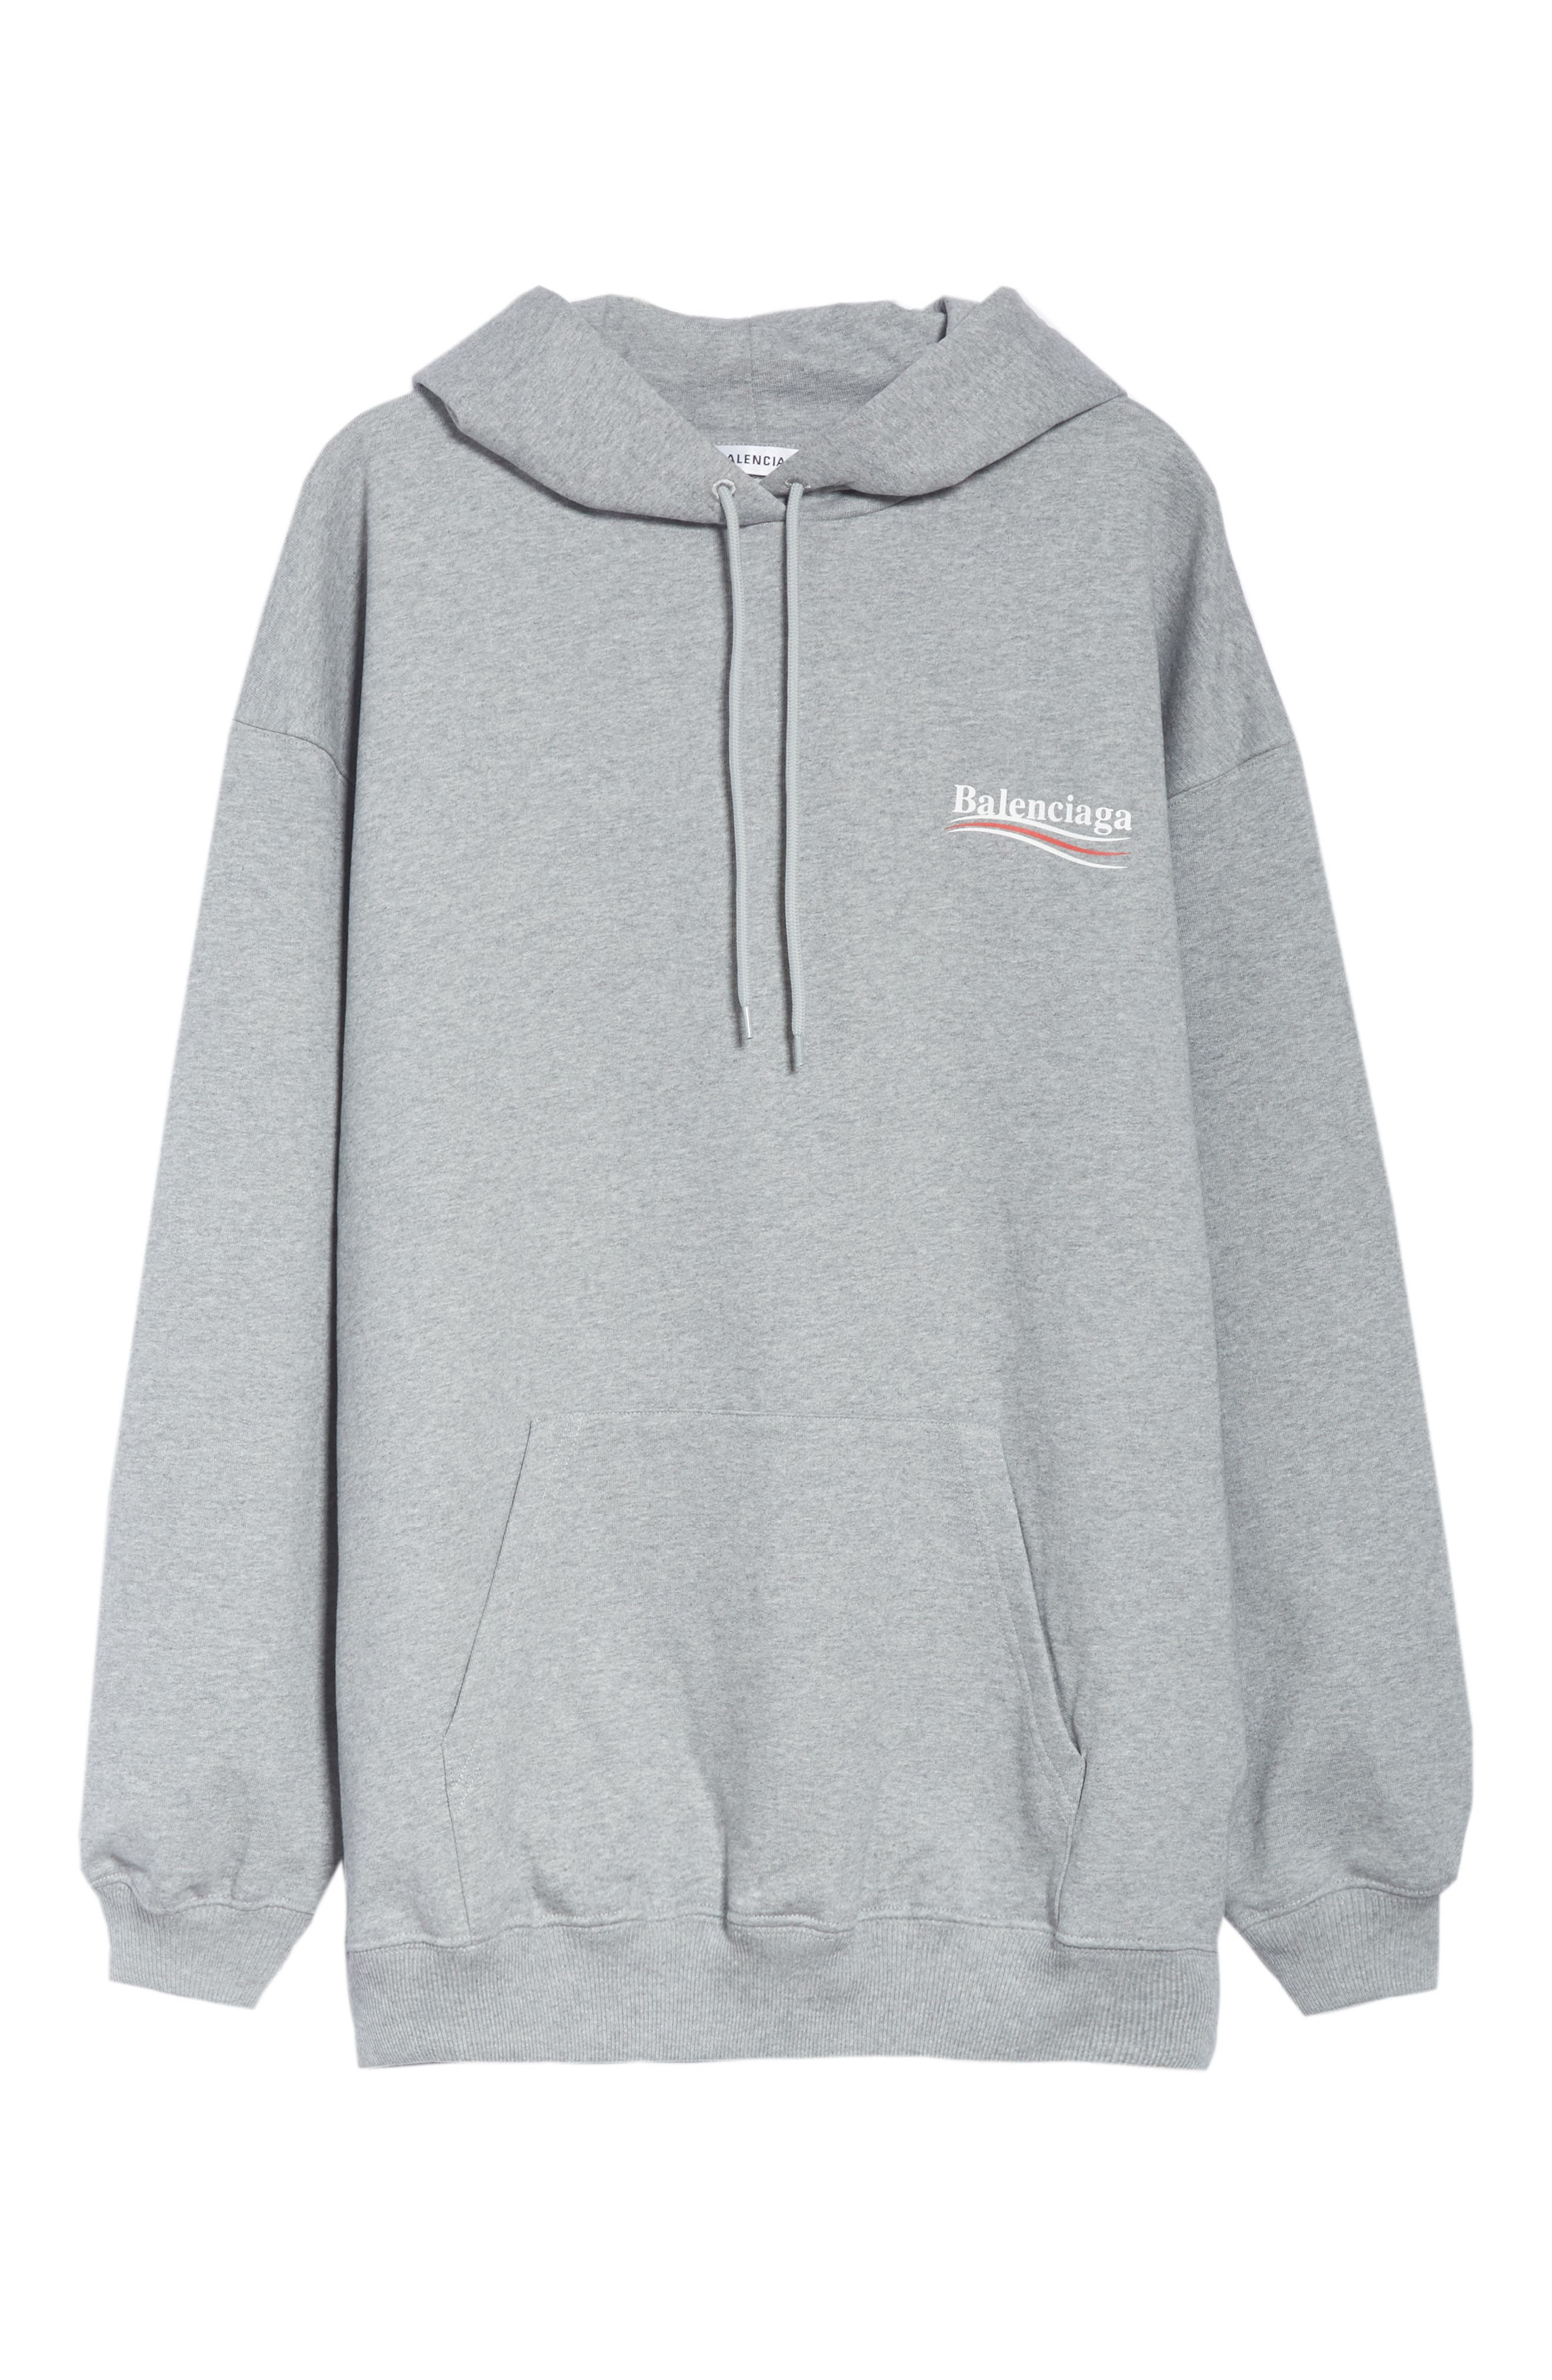 Campaign Logo Hoodie,                             Alternate thumbnail 6, color,                             020